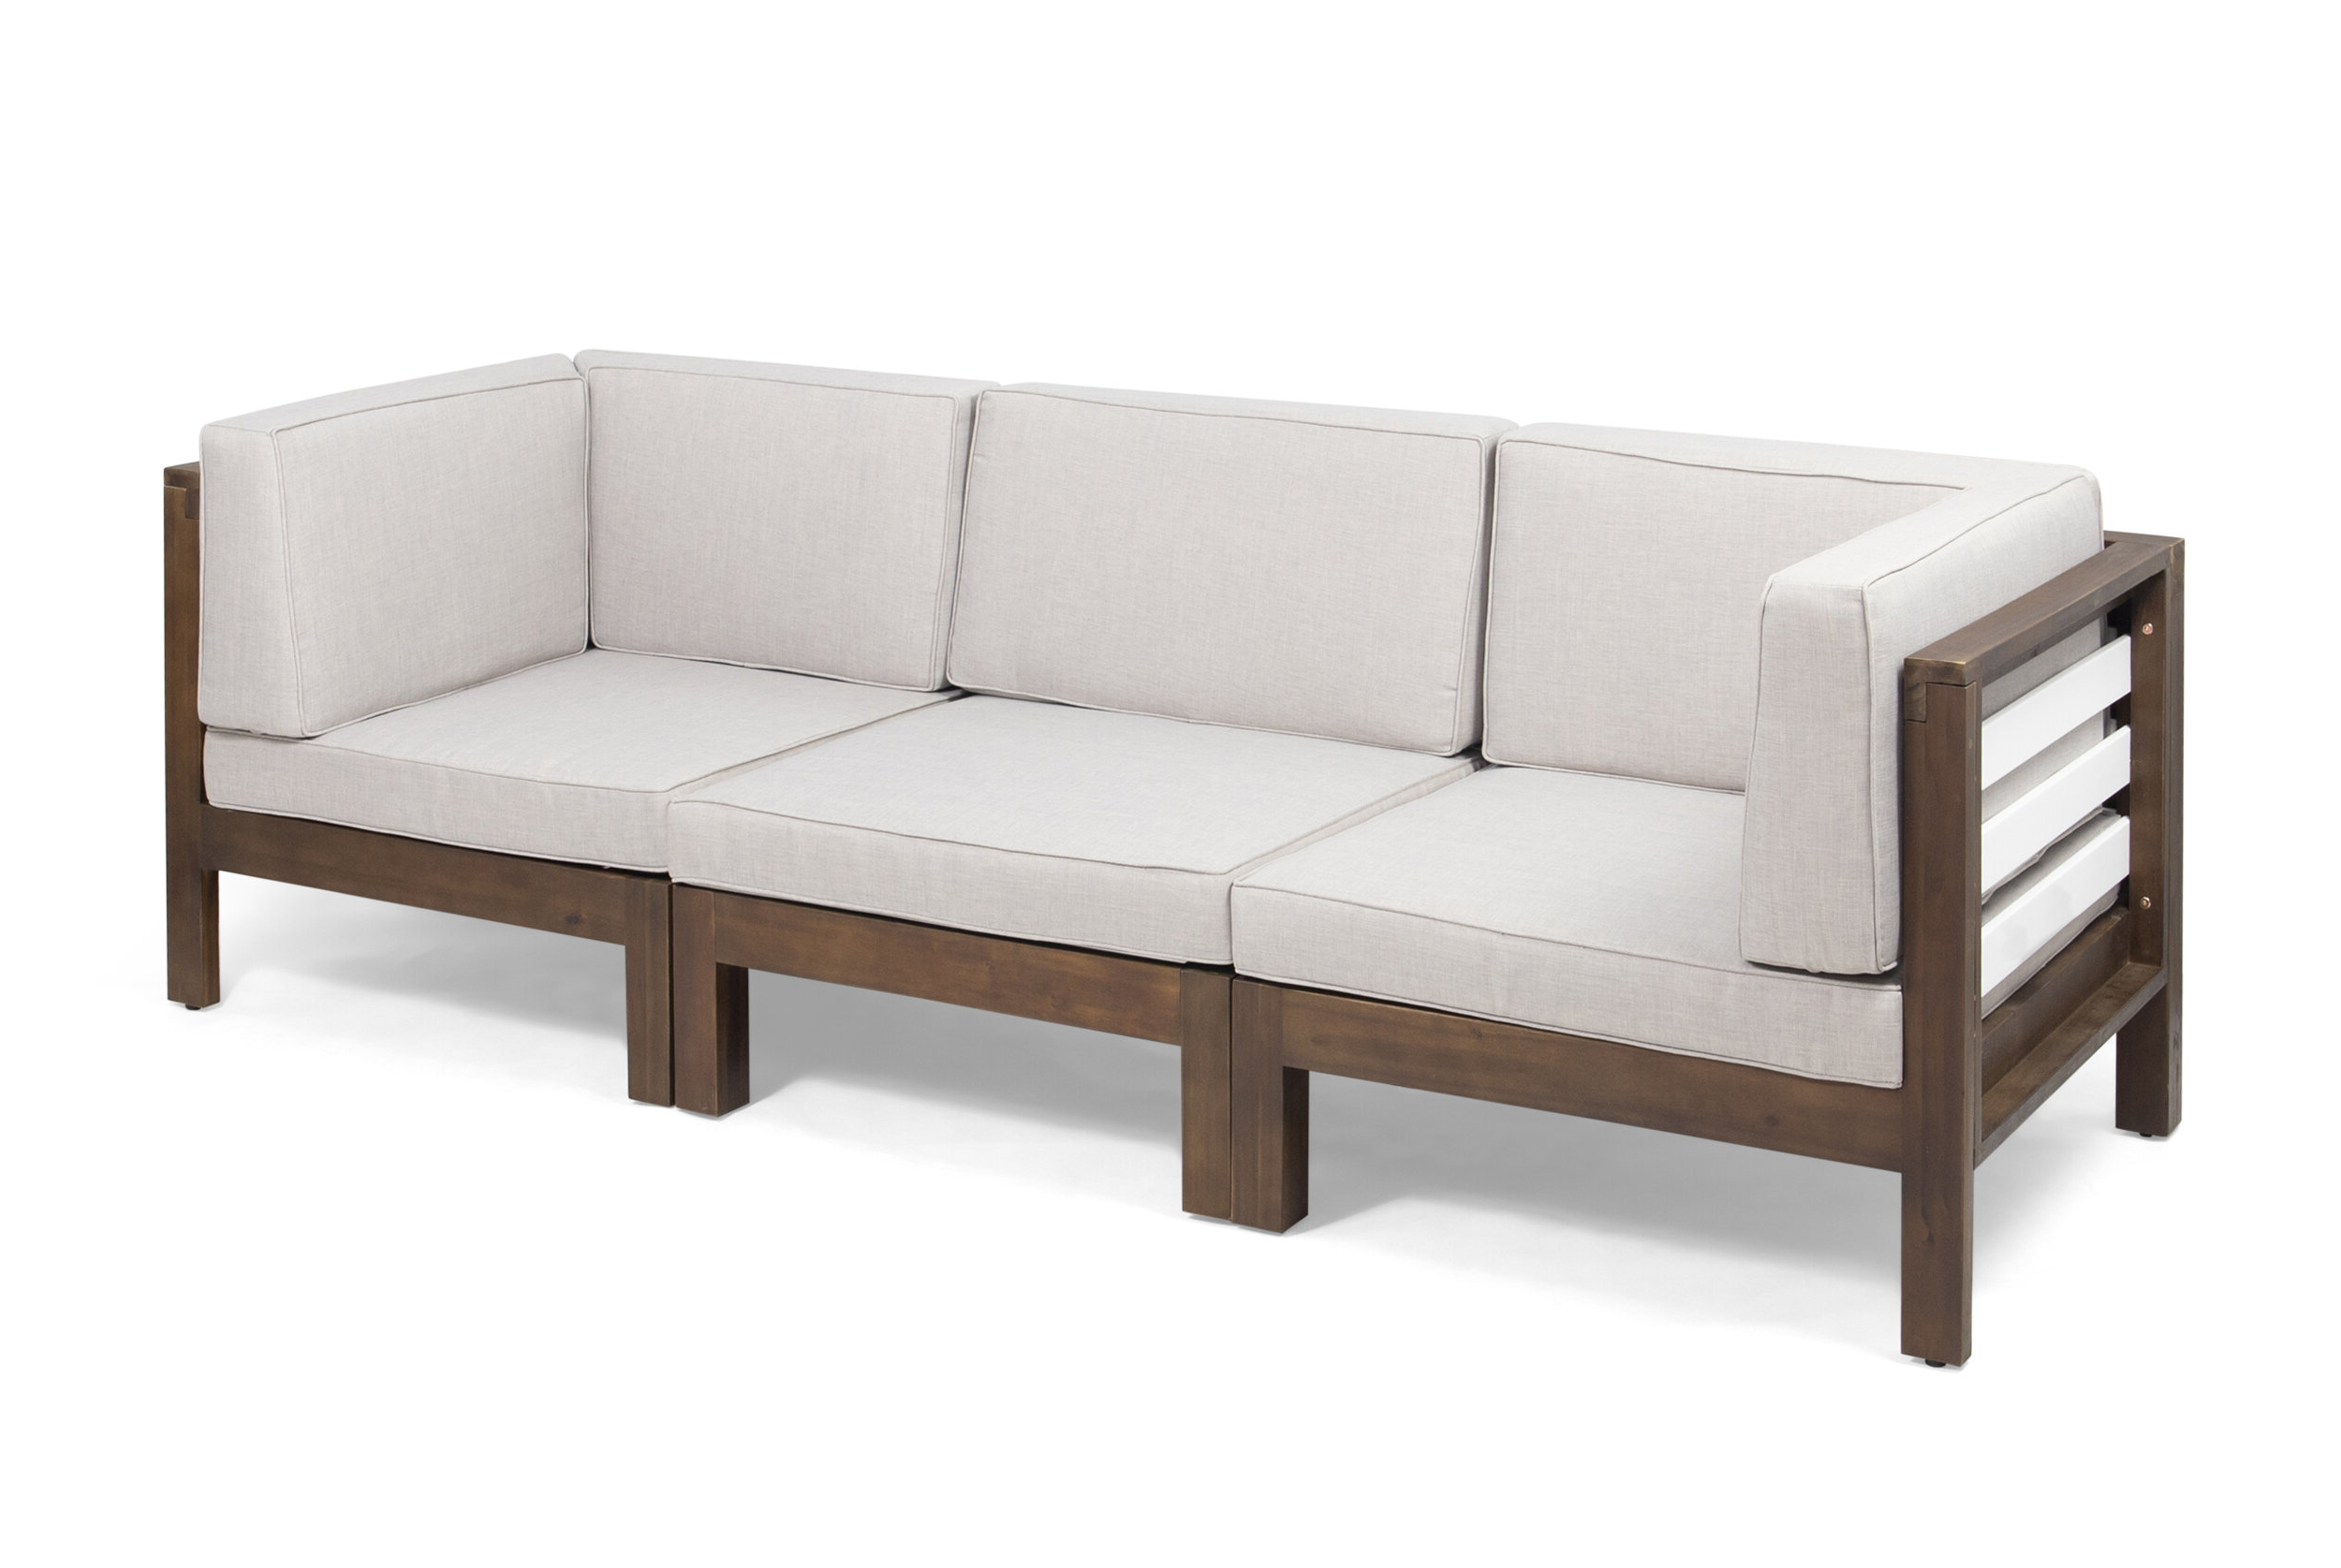 Parnell Outdoor Modular Patio Sofa With Cushions Throughout Preferred Seaham Patio Sectionals With Cushions (View 16 of 20)